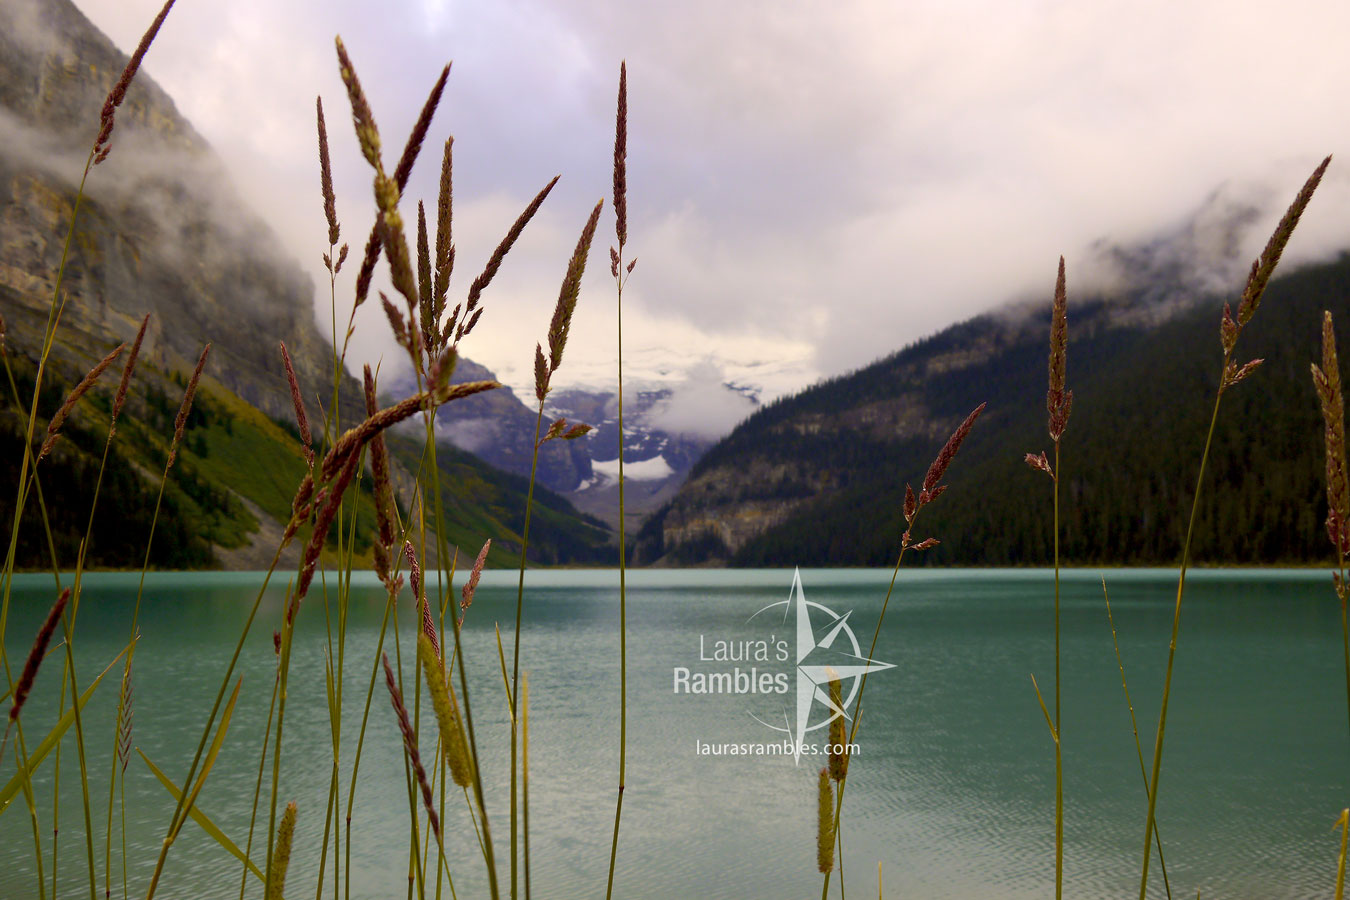 About - Laura's Rambles - Lake Louise - Banff National Park, Alberta, Canada